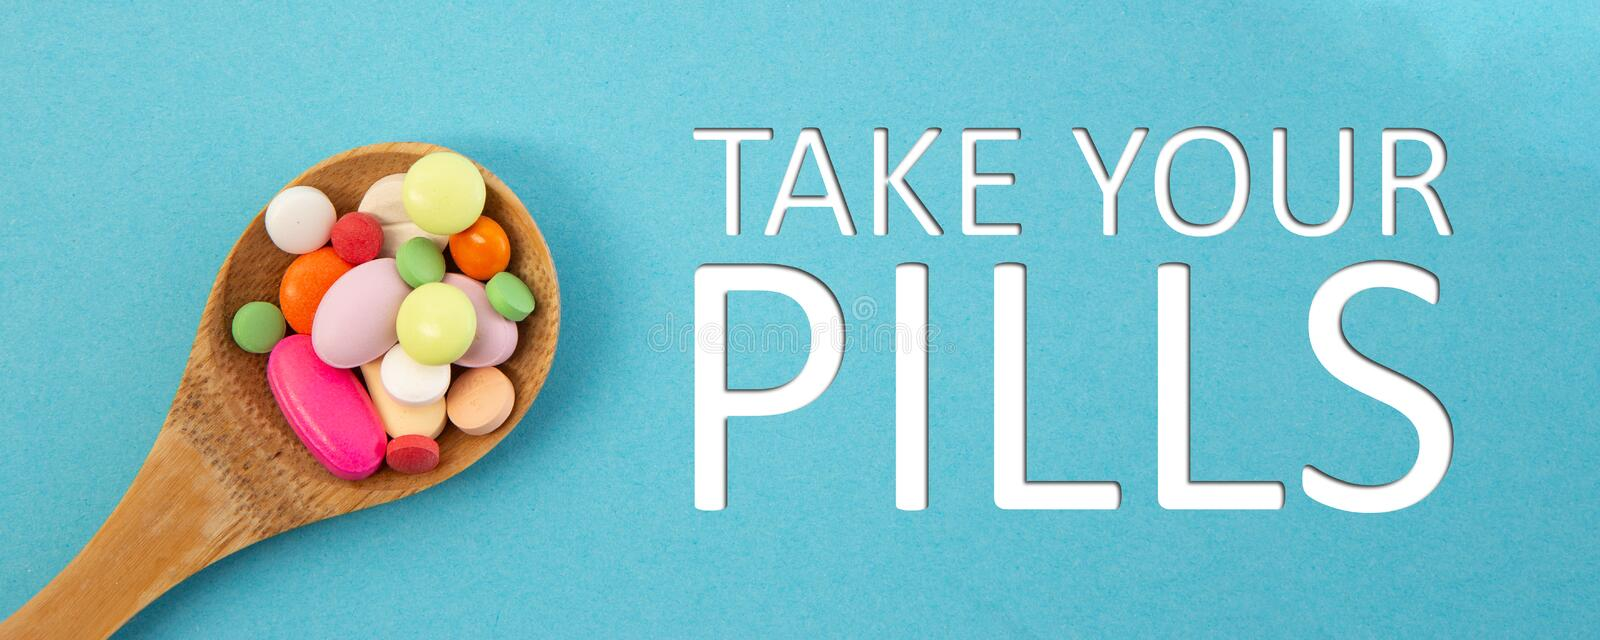 Spoonful of medicine as take your pills concept royalty free stock photos